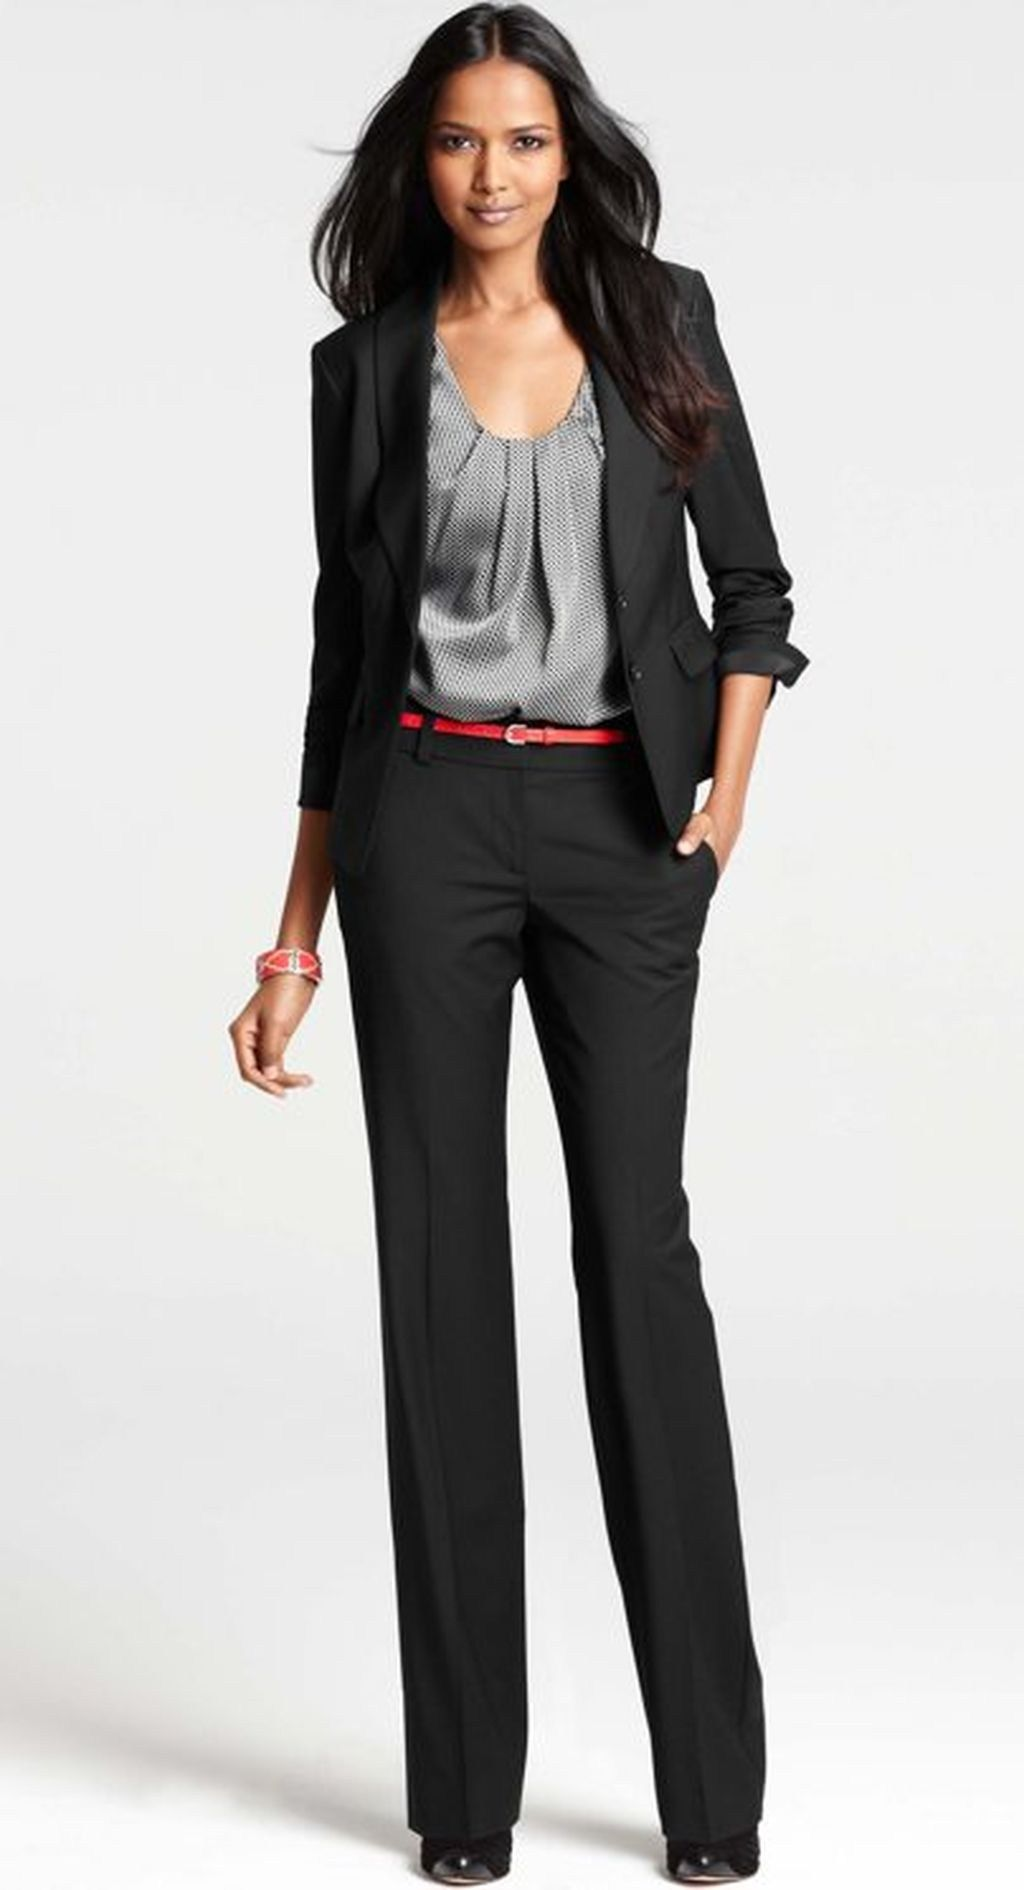 Casual outfits ideas for professional women 34 | Pinterest | Professional women Woman and Clothes